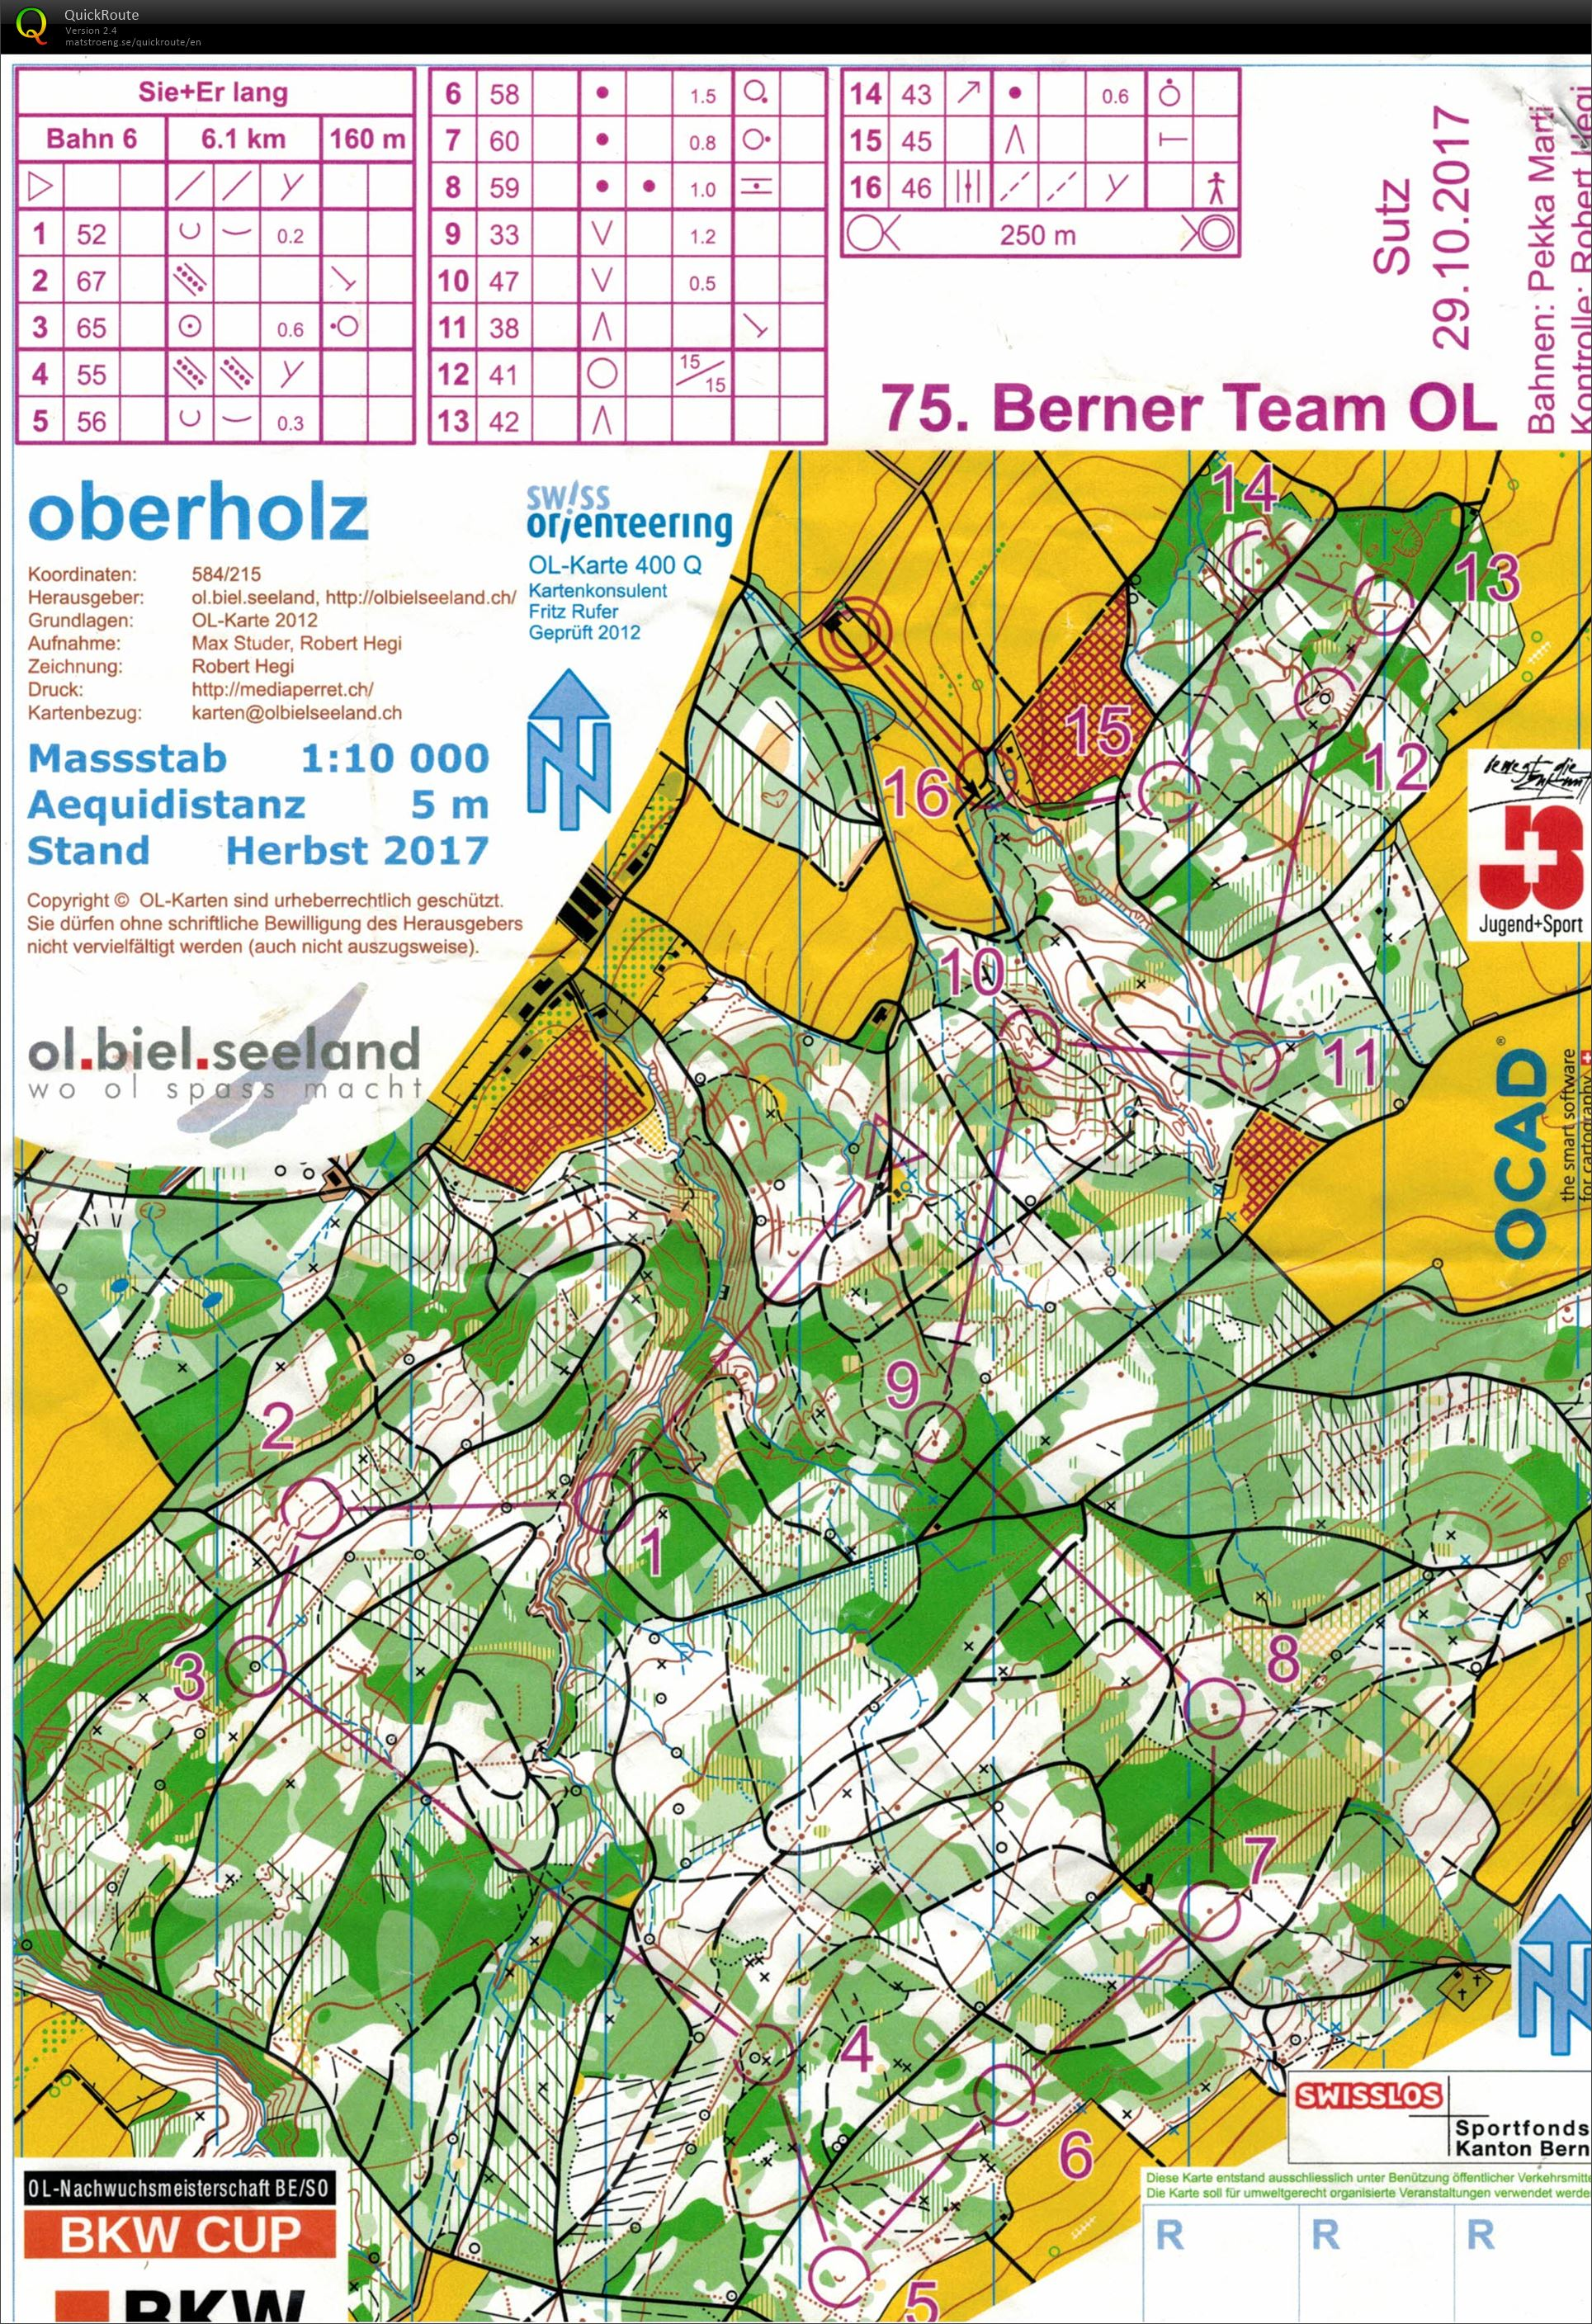 Berner Team-OL - October 29th 2017 - Orienteering Map from Remo Ruch